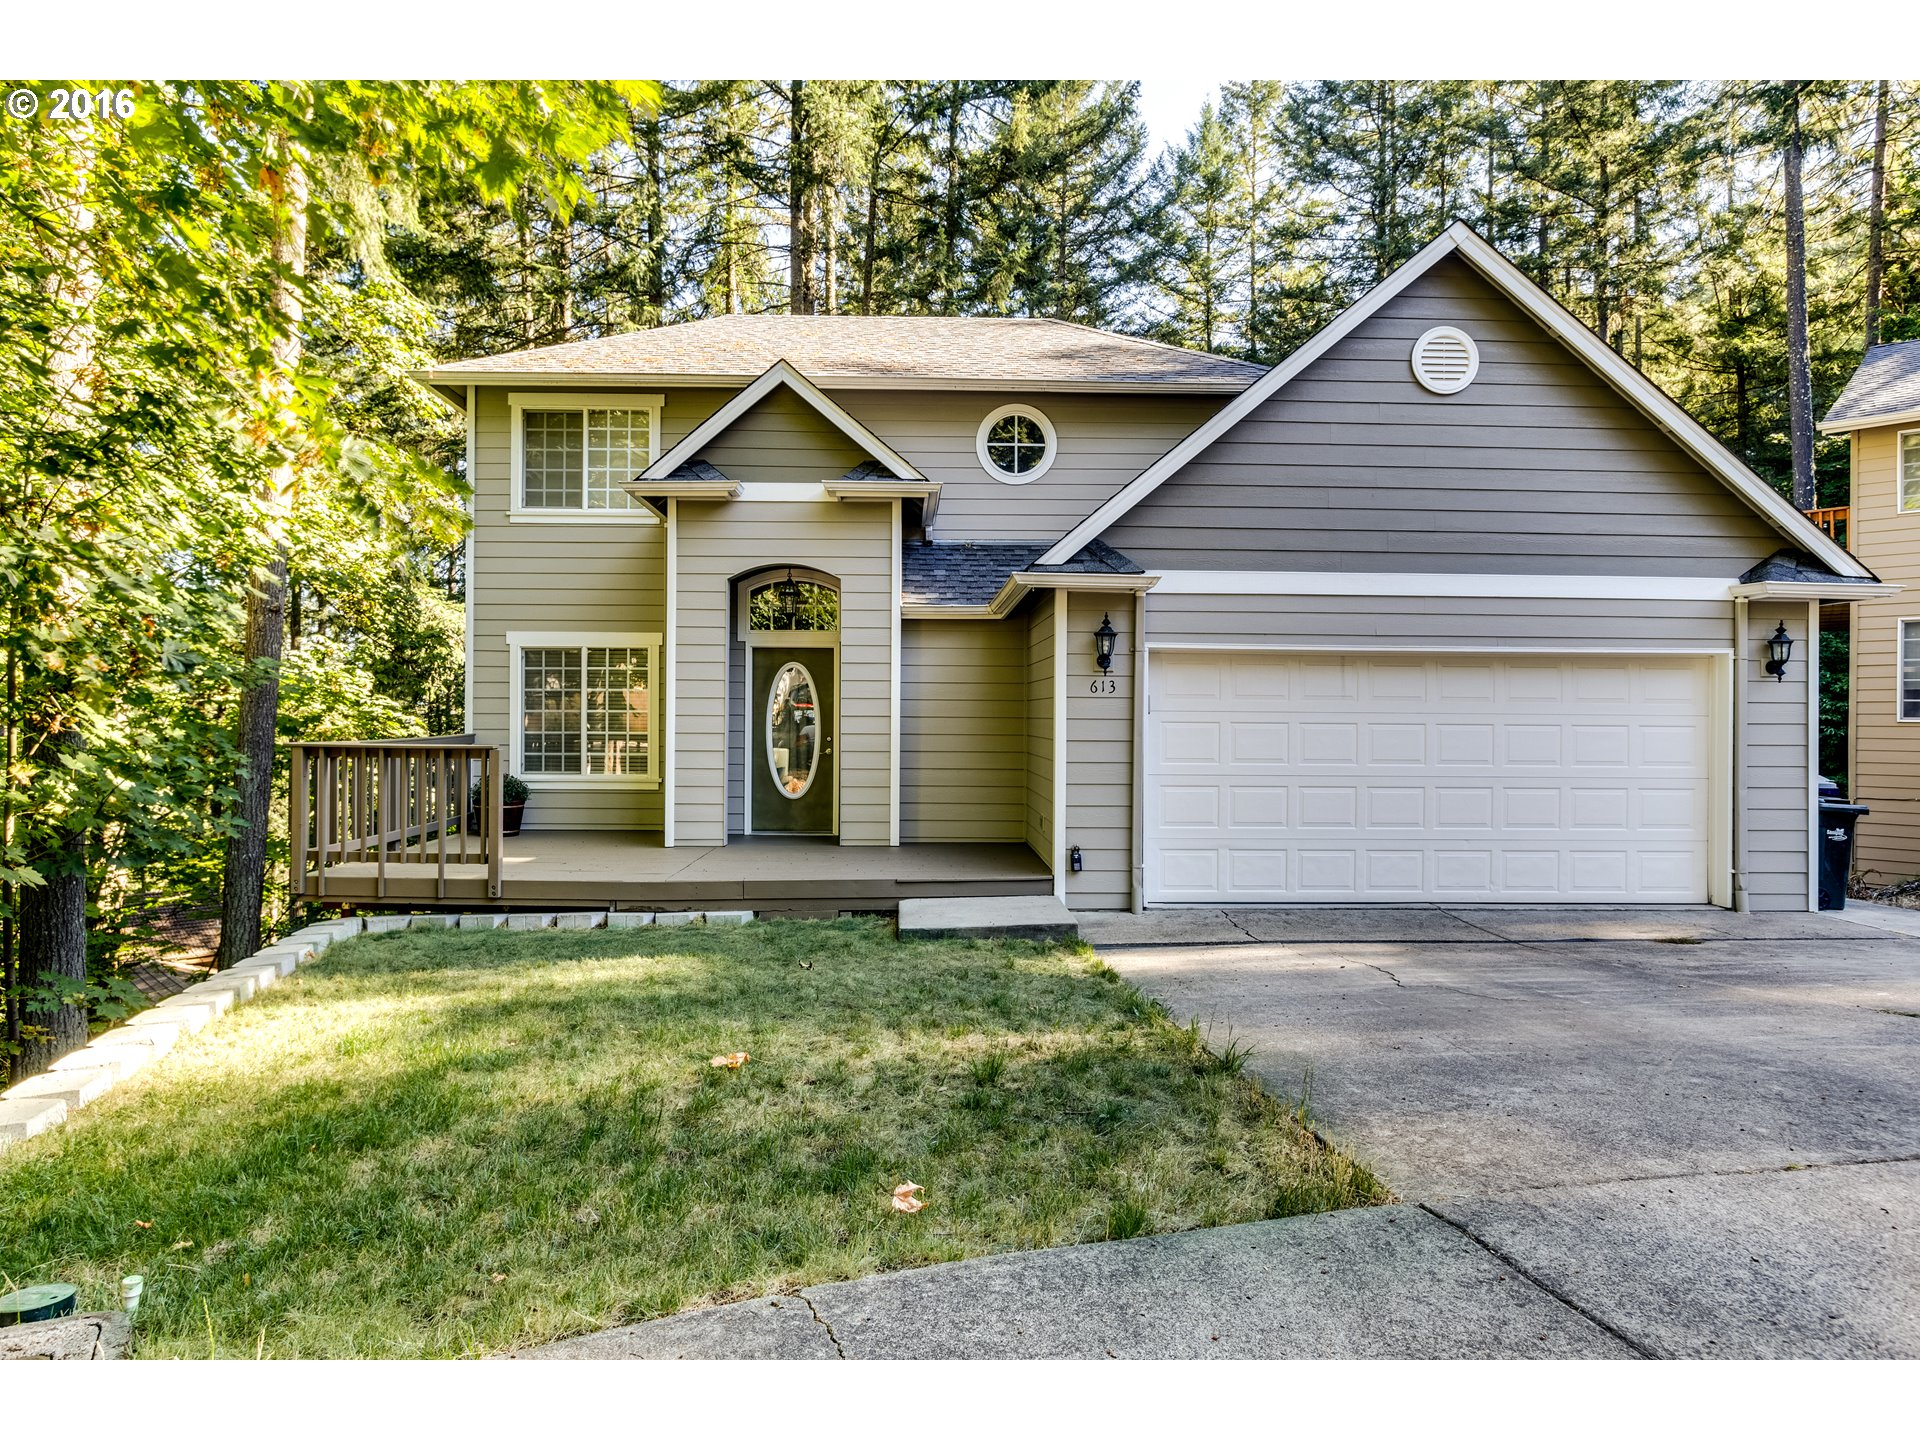 613 S 73RD ST, Springfield, OR 97478